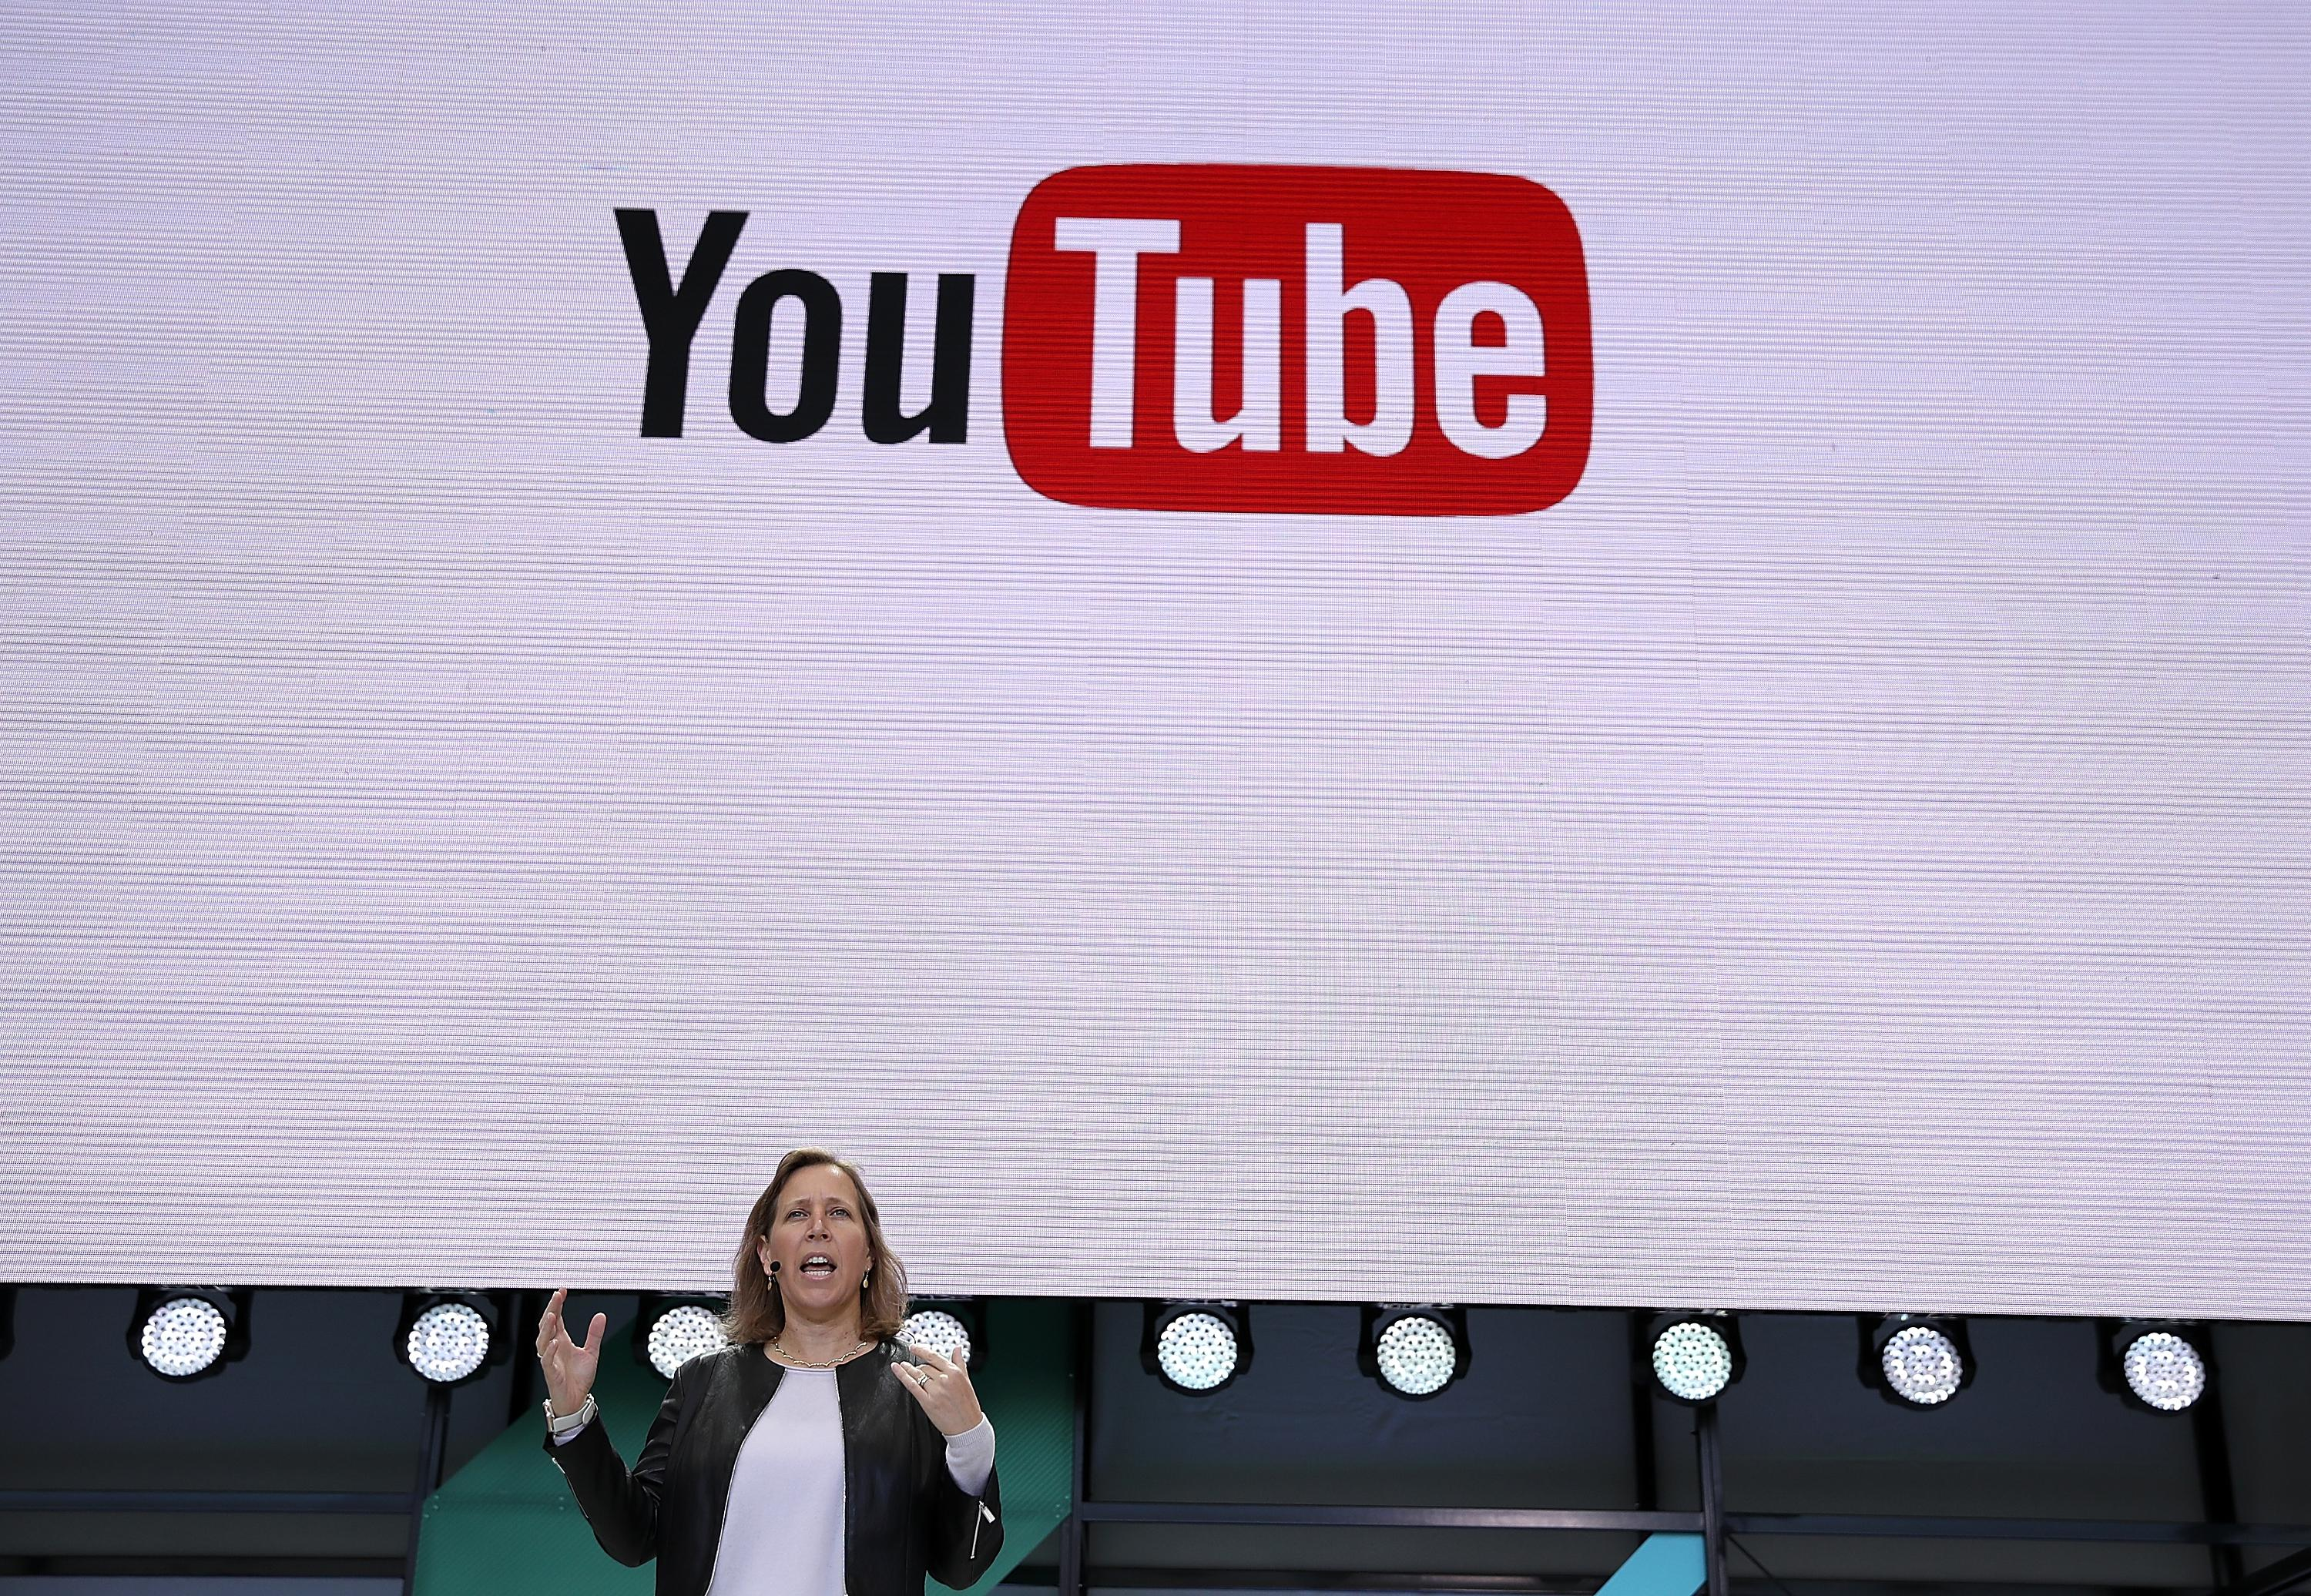 YouTube CEO Susan Wojcicki speaks during the opening keynote address at the Google I/O 2017 Conference.